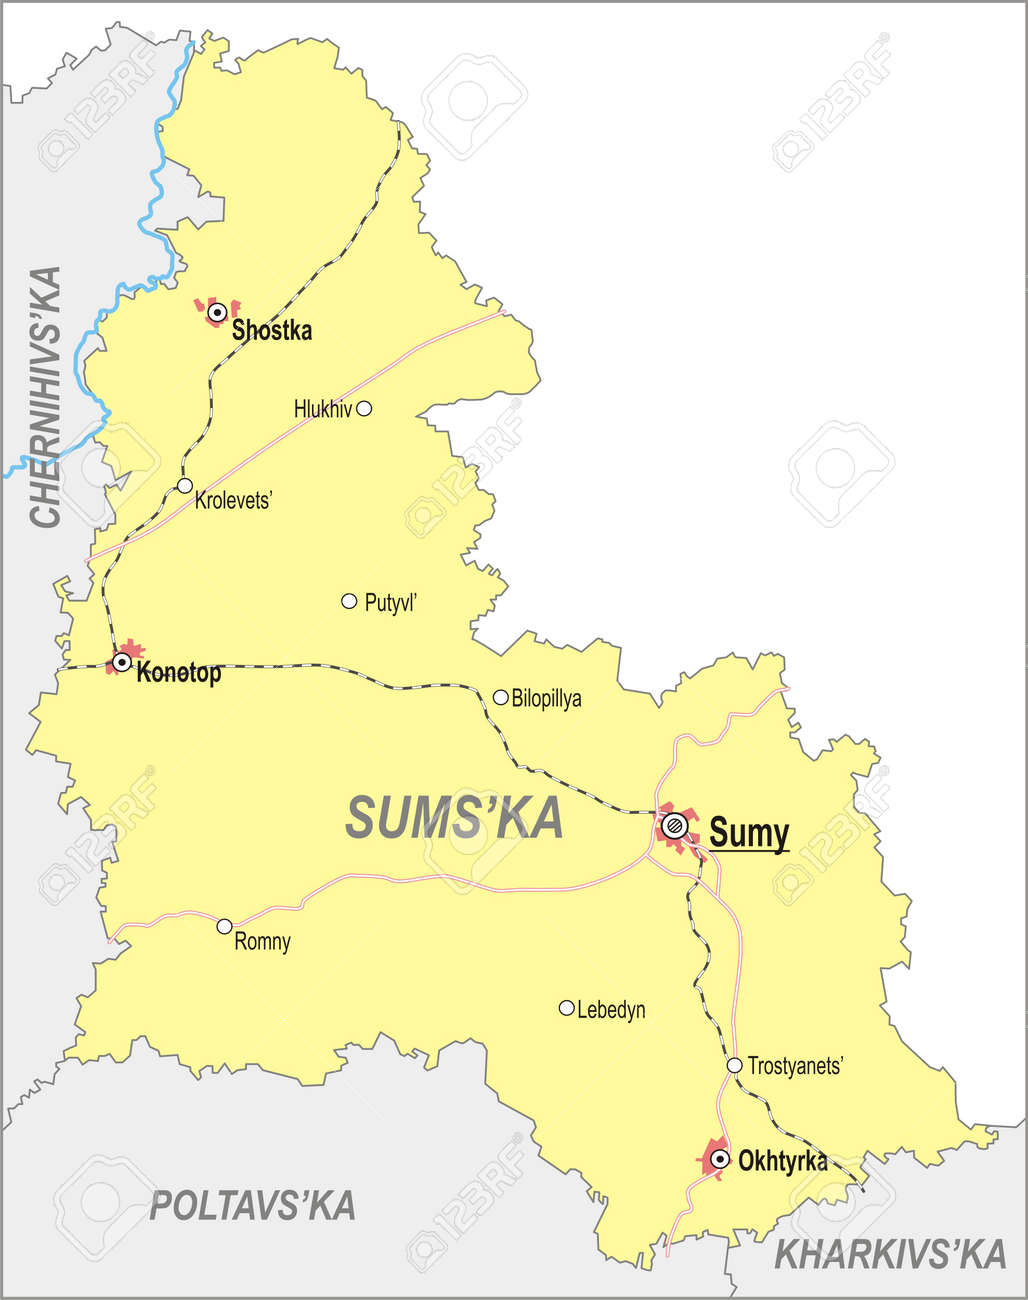 Map Of Sumy Oblast With Major Cities And Roads Royalty Free Cliparts